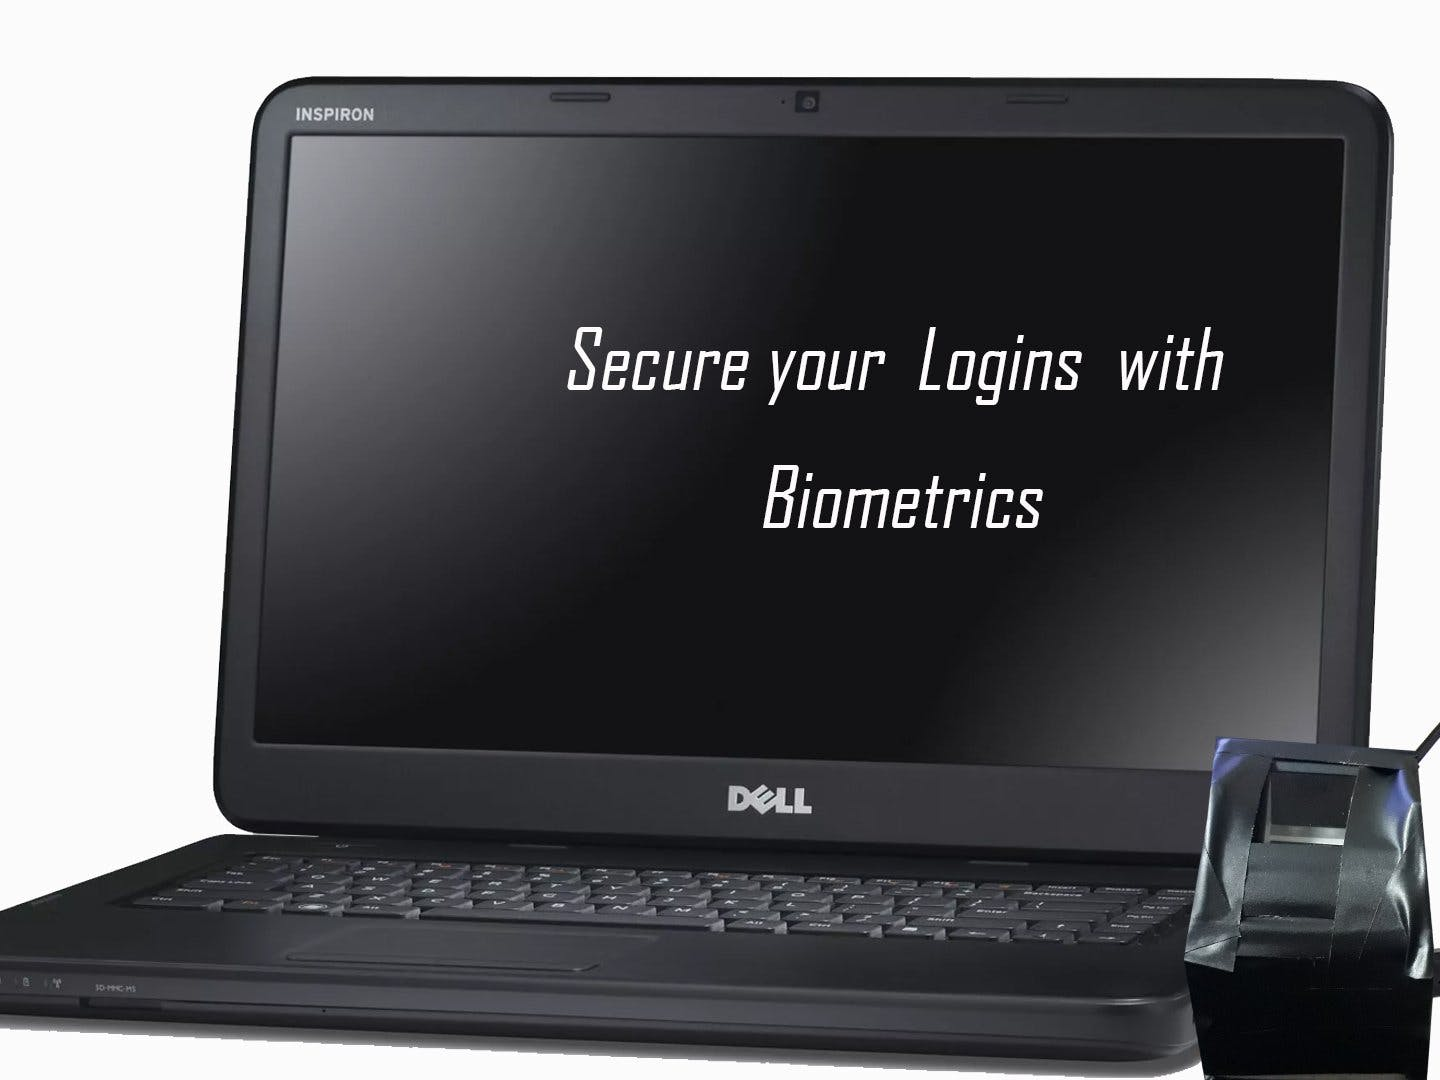 Secure Your Logins with Biometrics